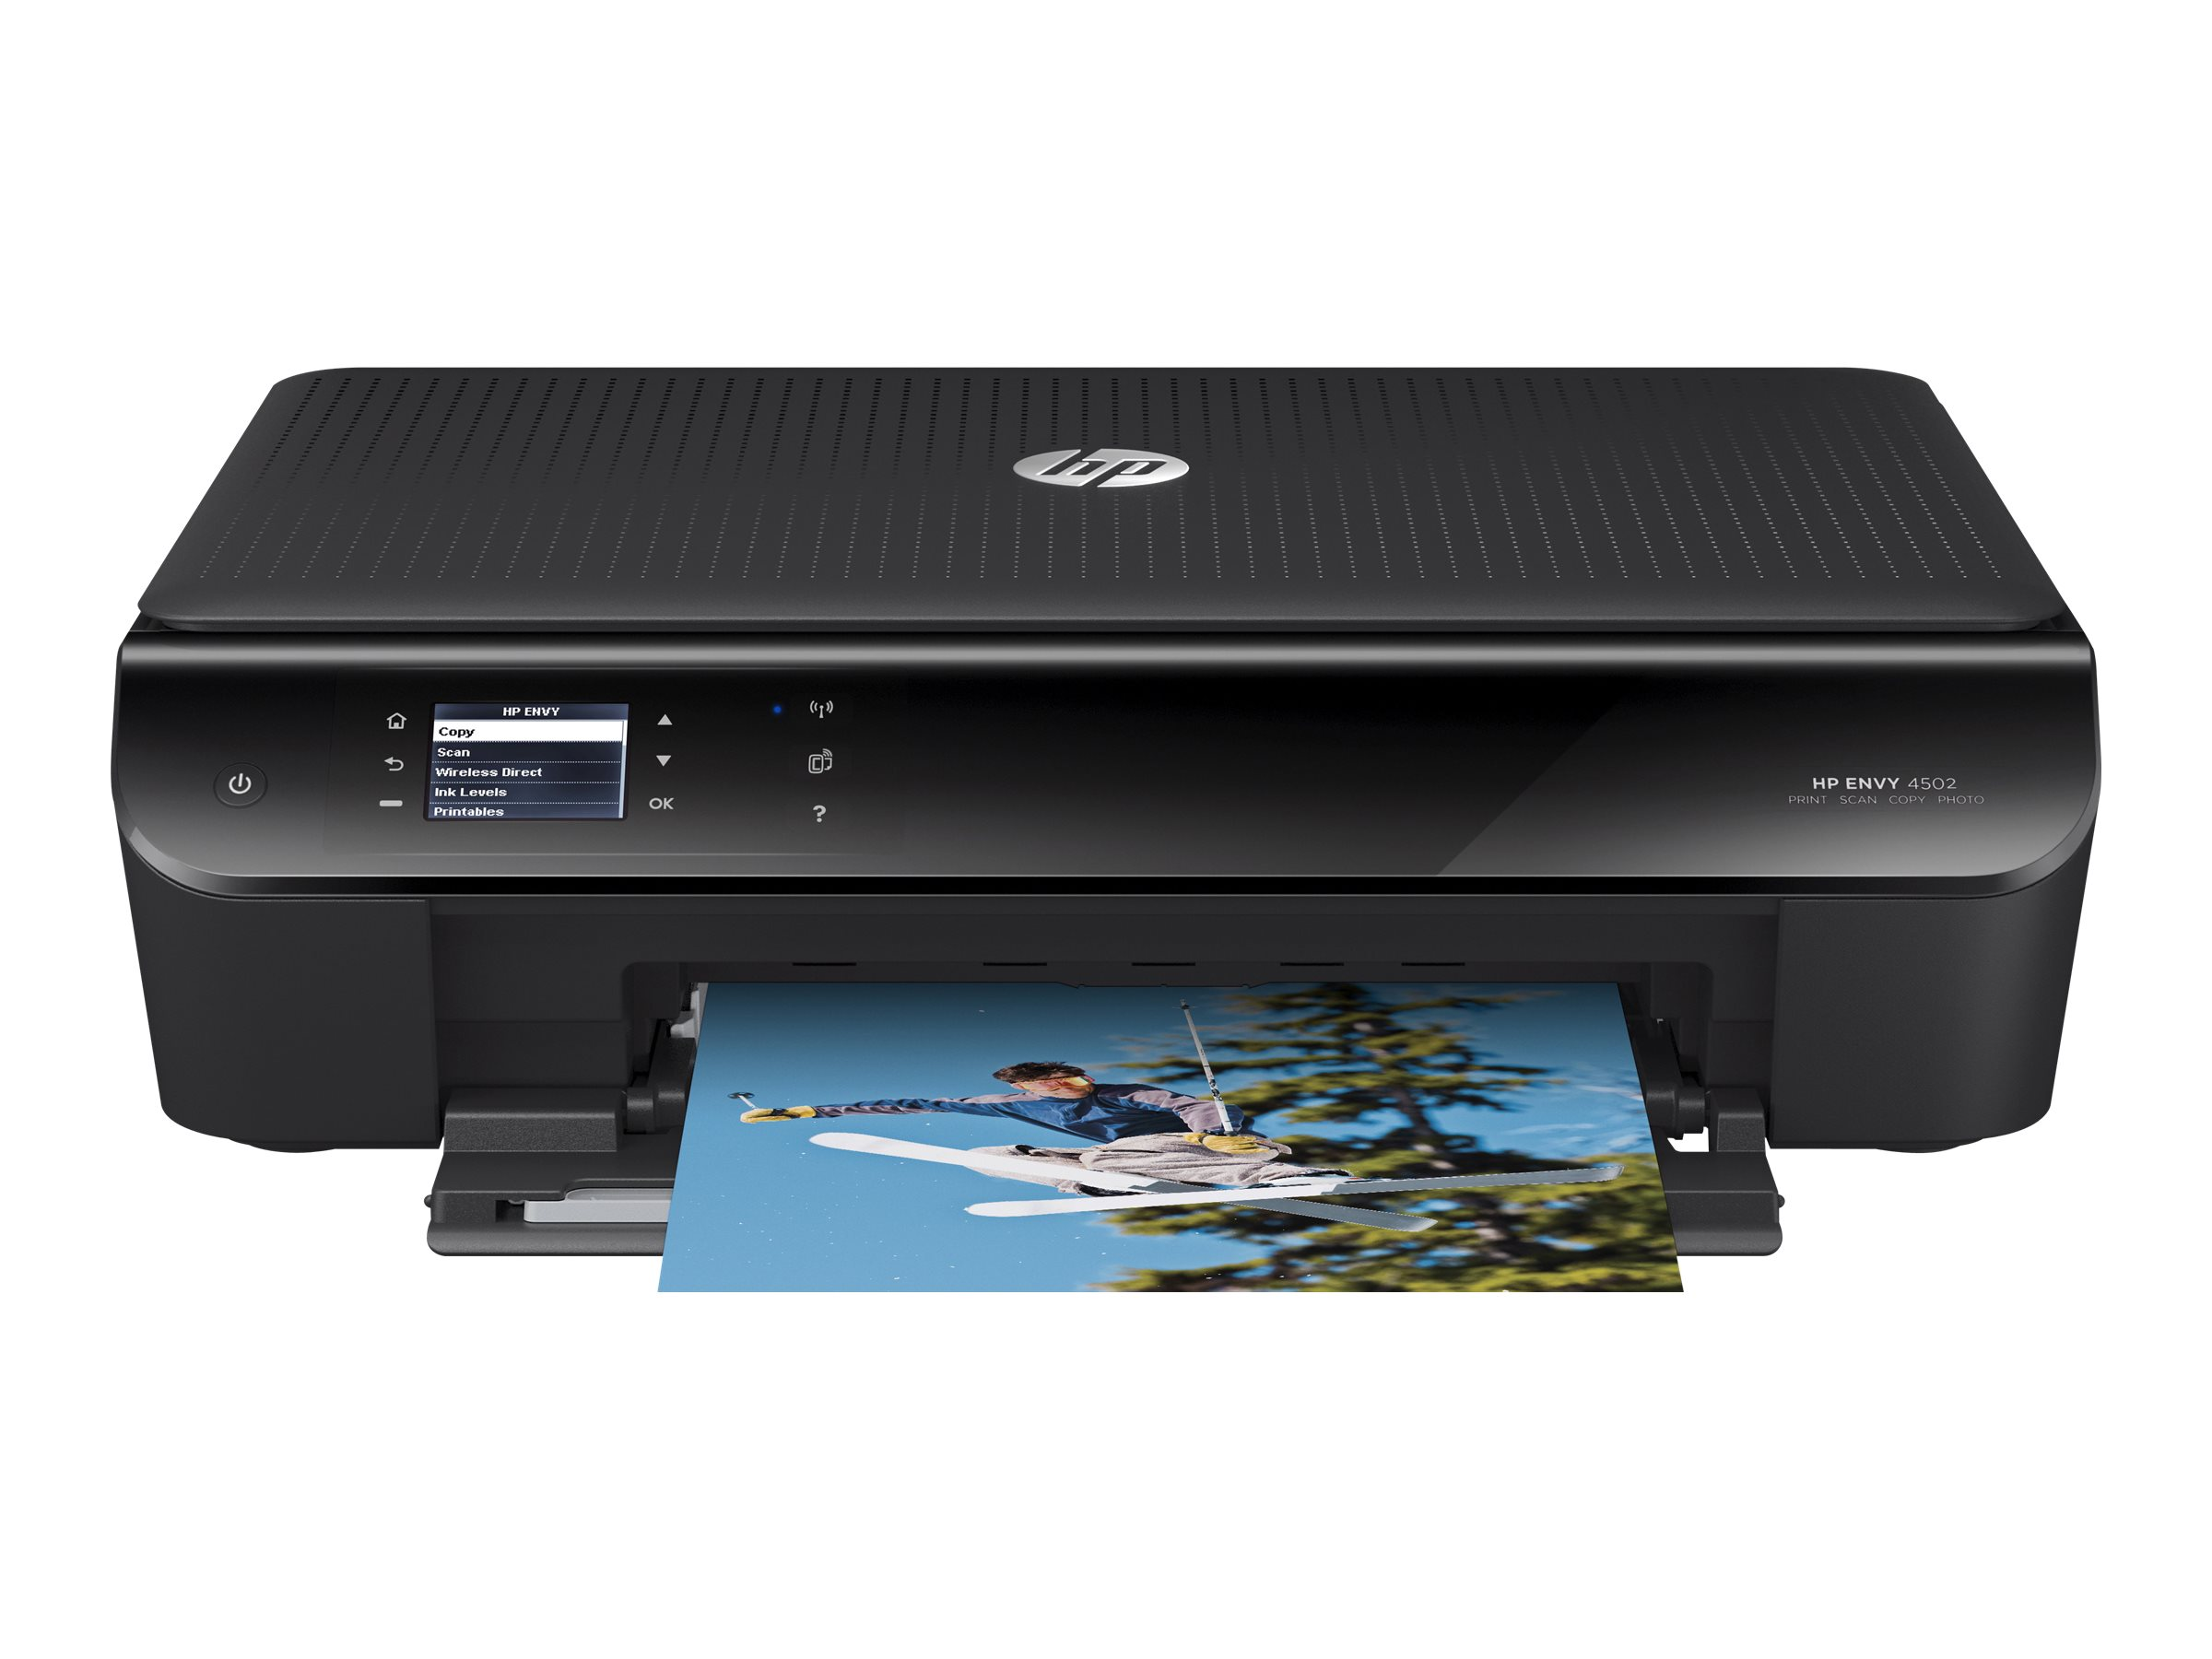 HP Envy 4502 Inkjet e-All-in-One Printer - Walmart.com